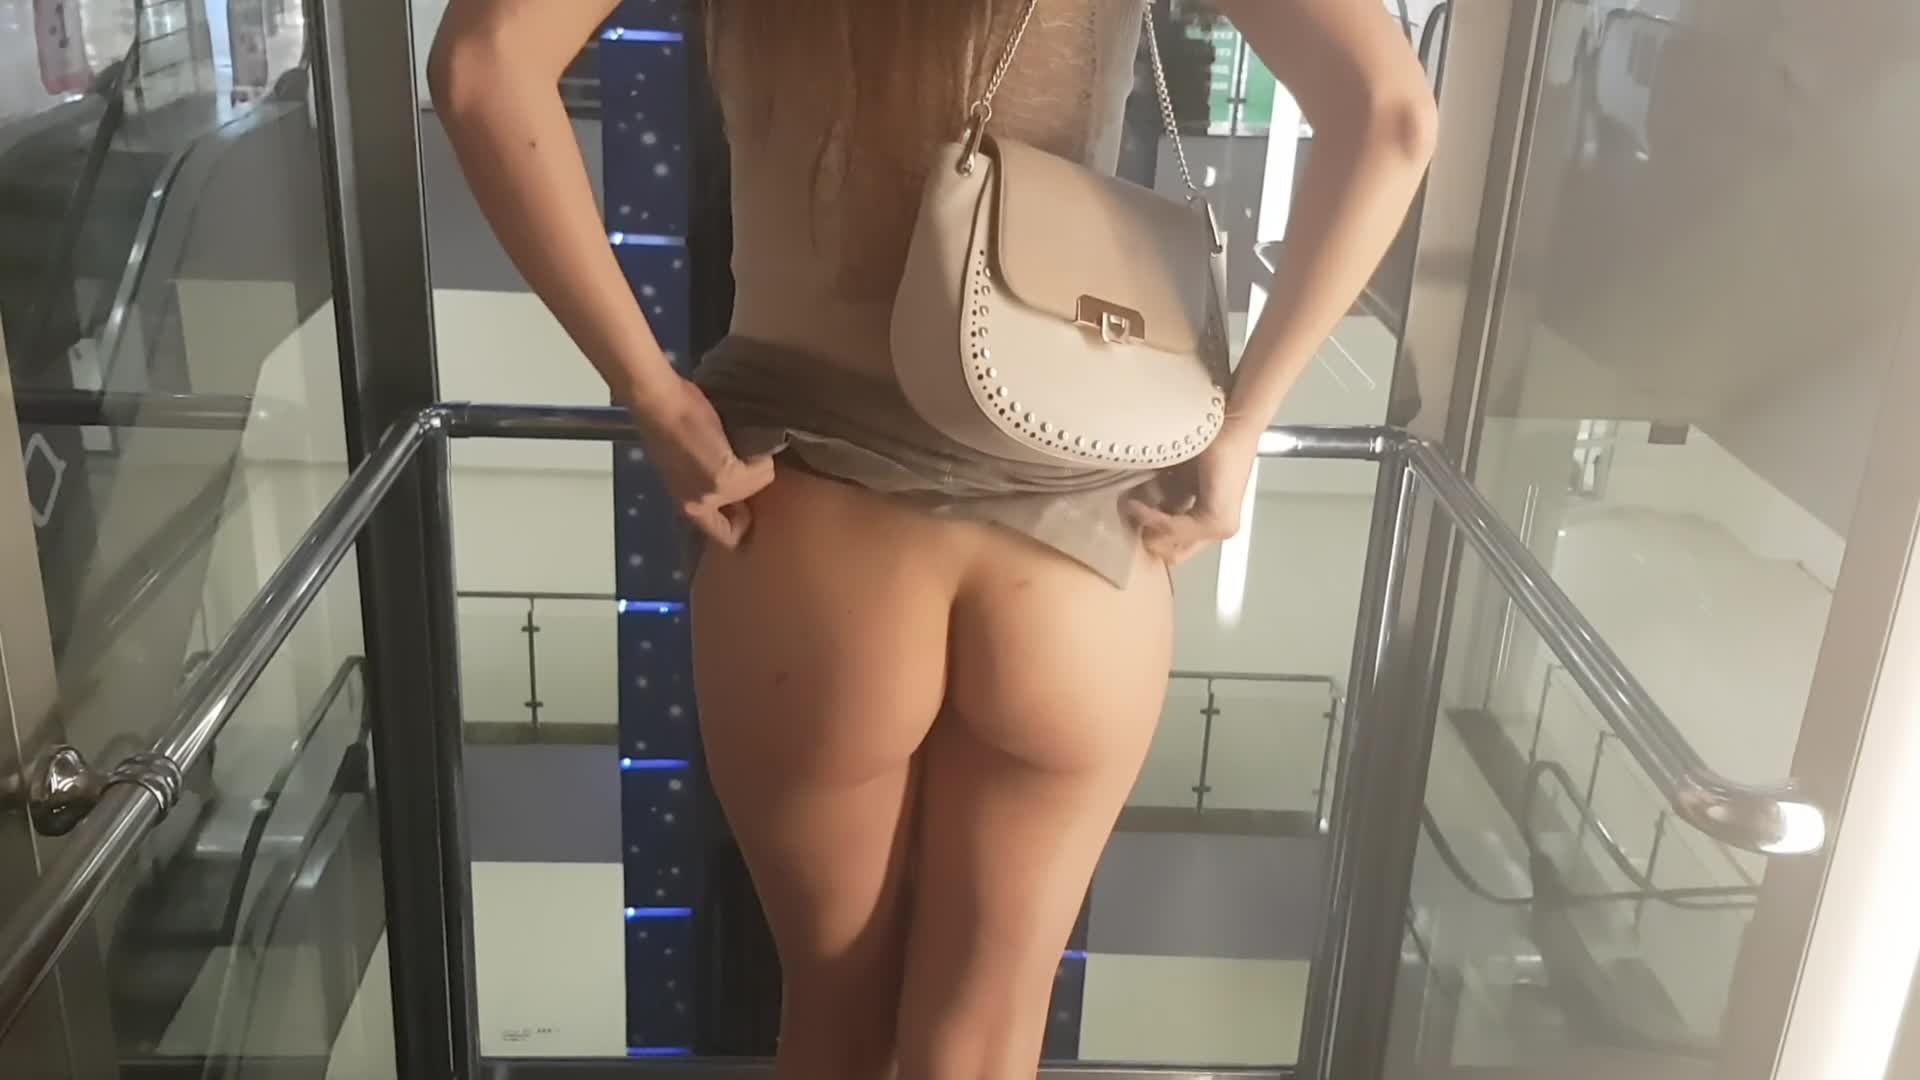 Woman in skirt shows ass and boobs in transparent elevator